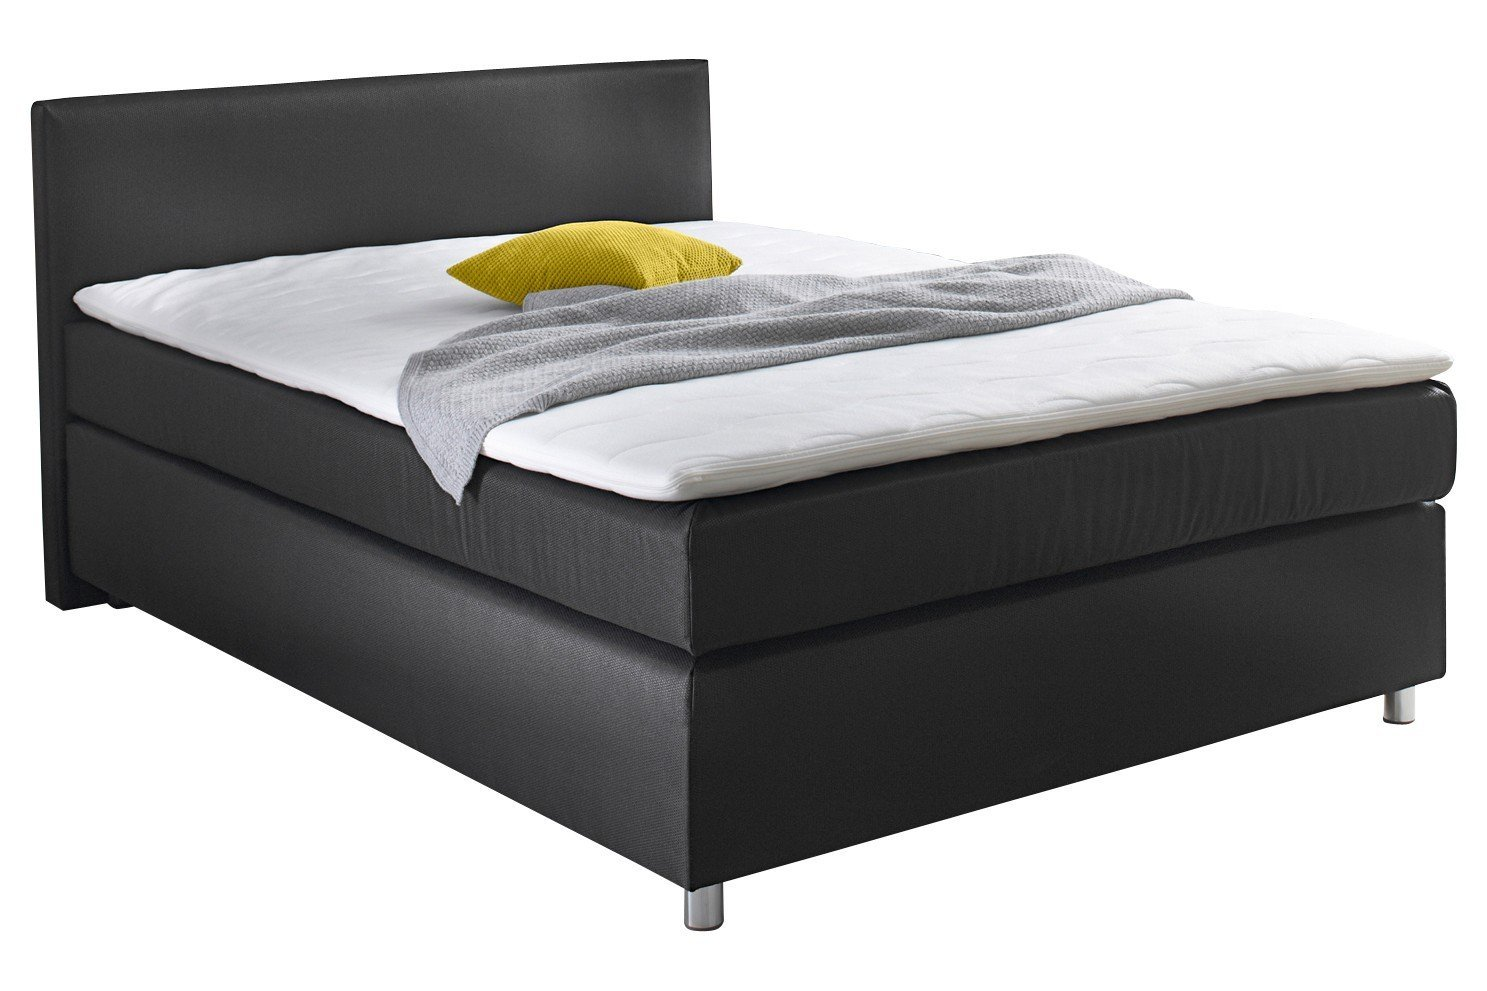 boxspring einzelbett test vergleich top 10 im mai 2018. Black Bedroom Furniture Sets. Home Design Ideas